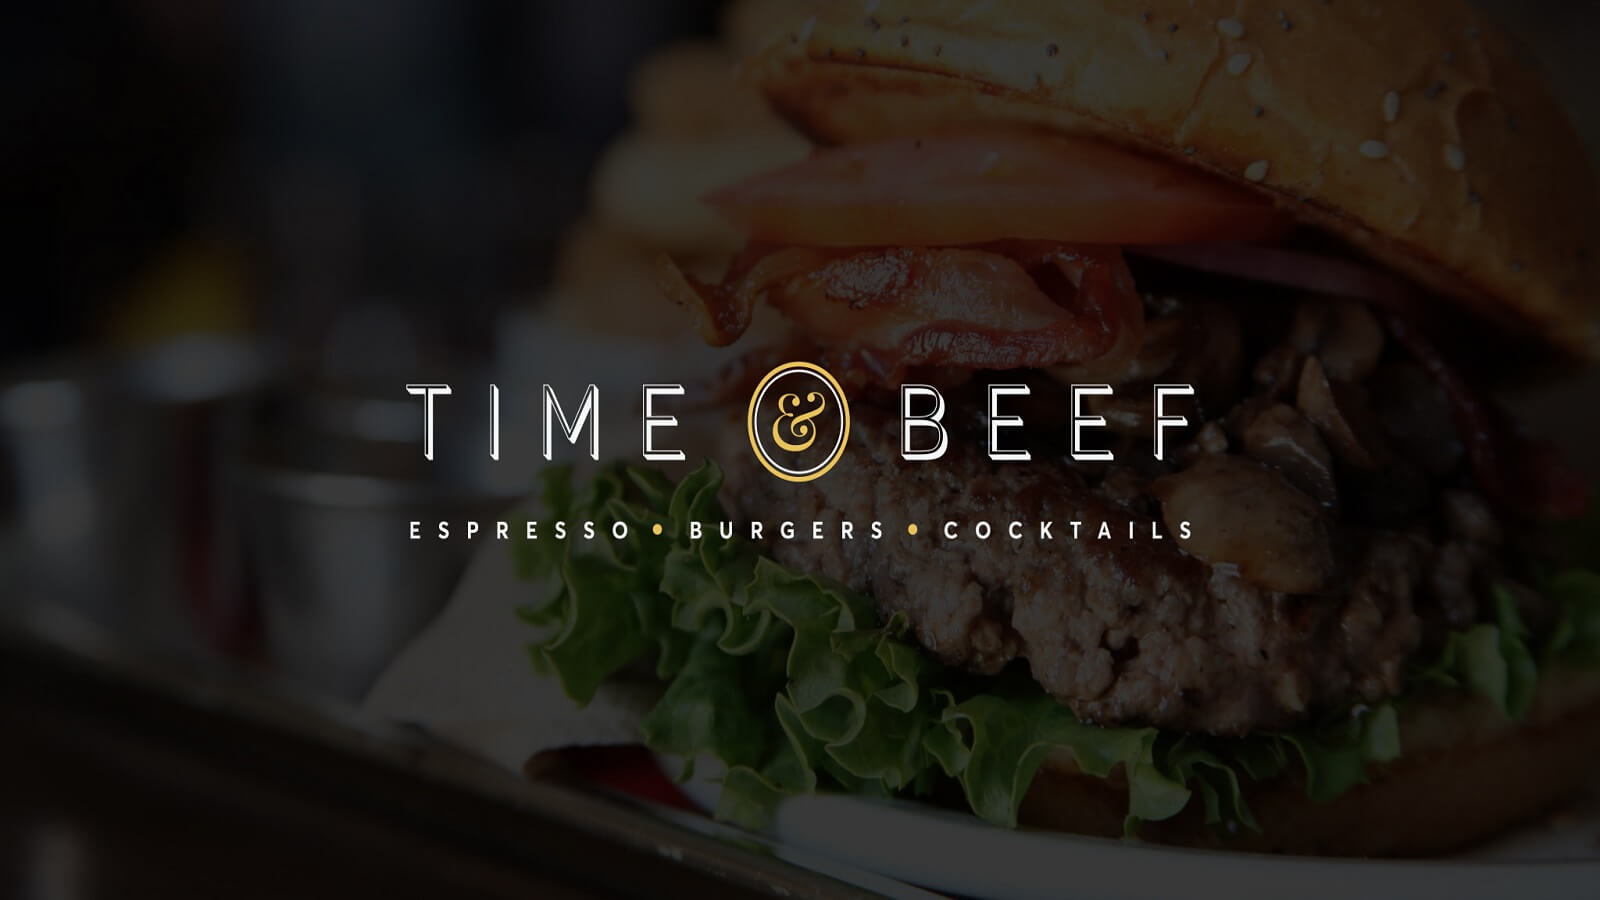 Time and Beef